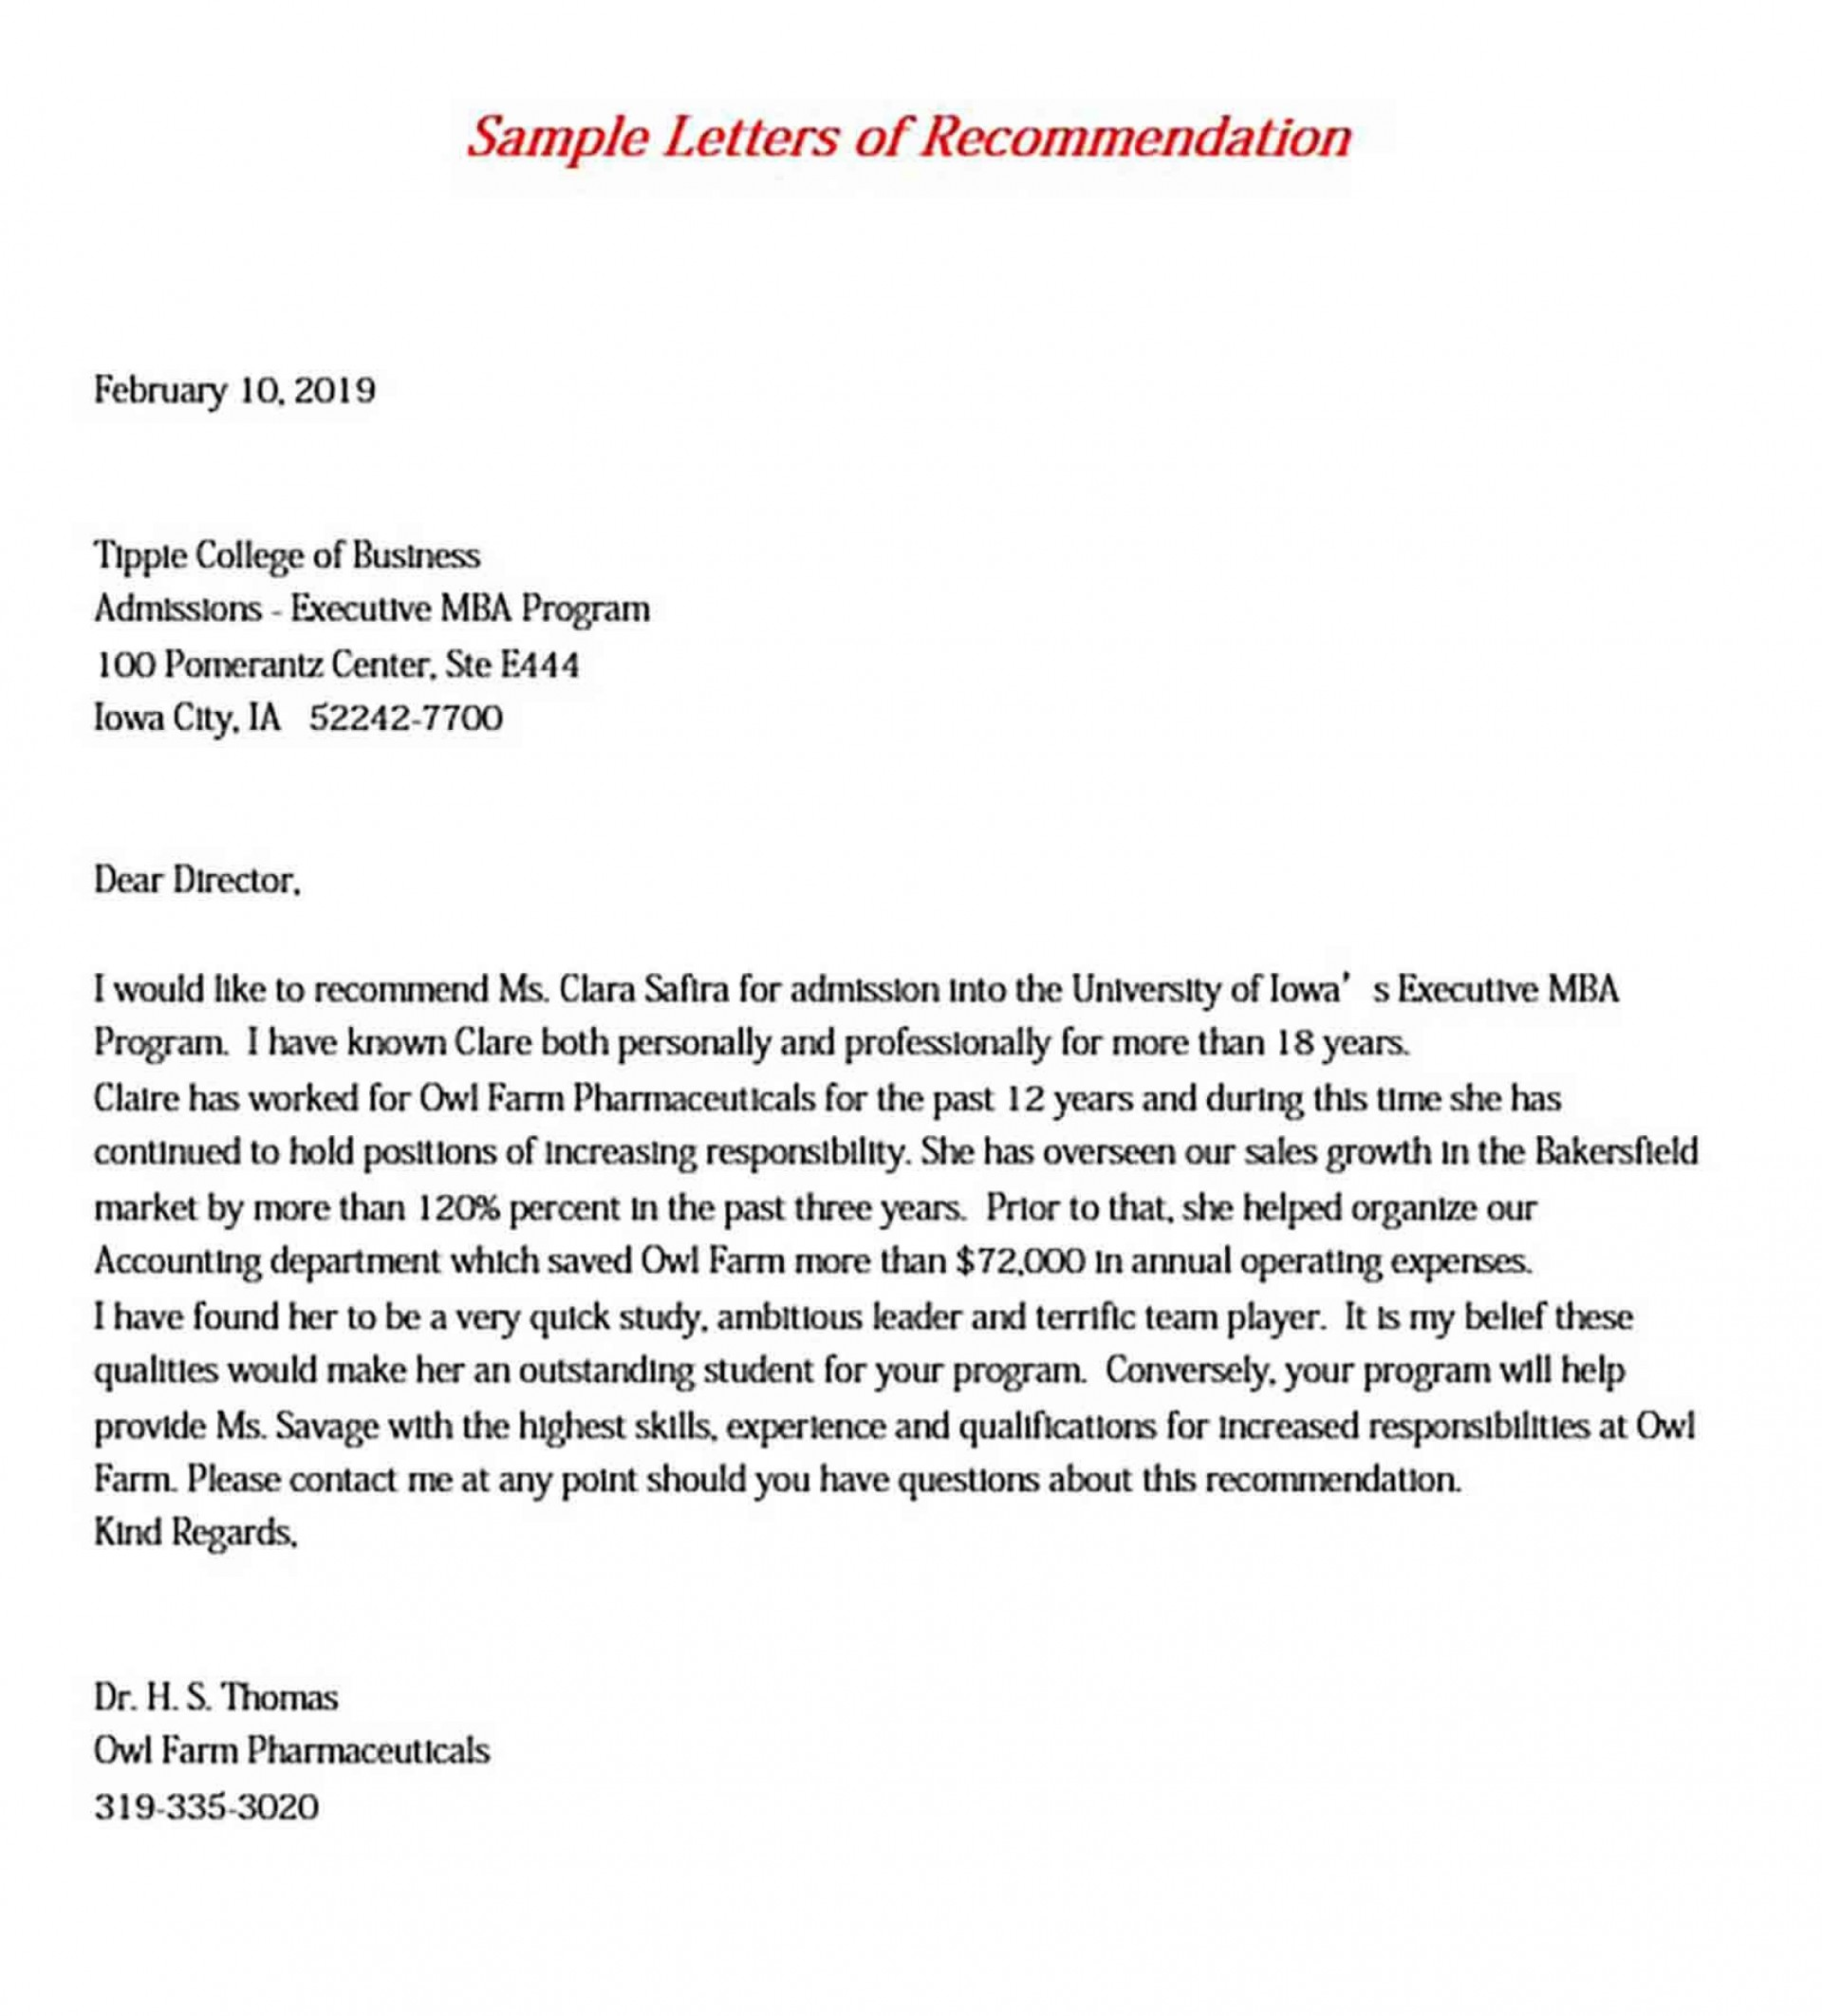 008 Incredible College Letter Of Recommendation Template Image  Writing Scholarship From Employer1920